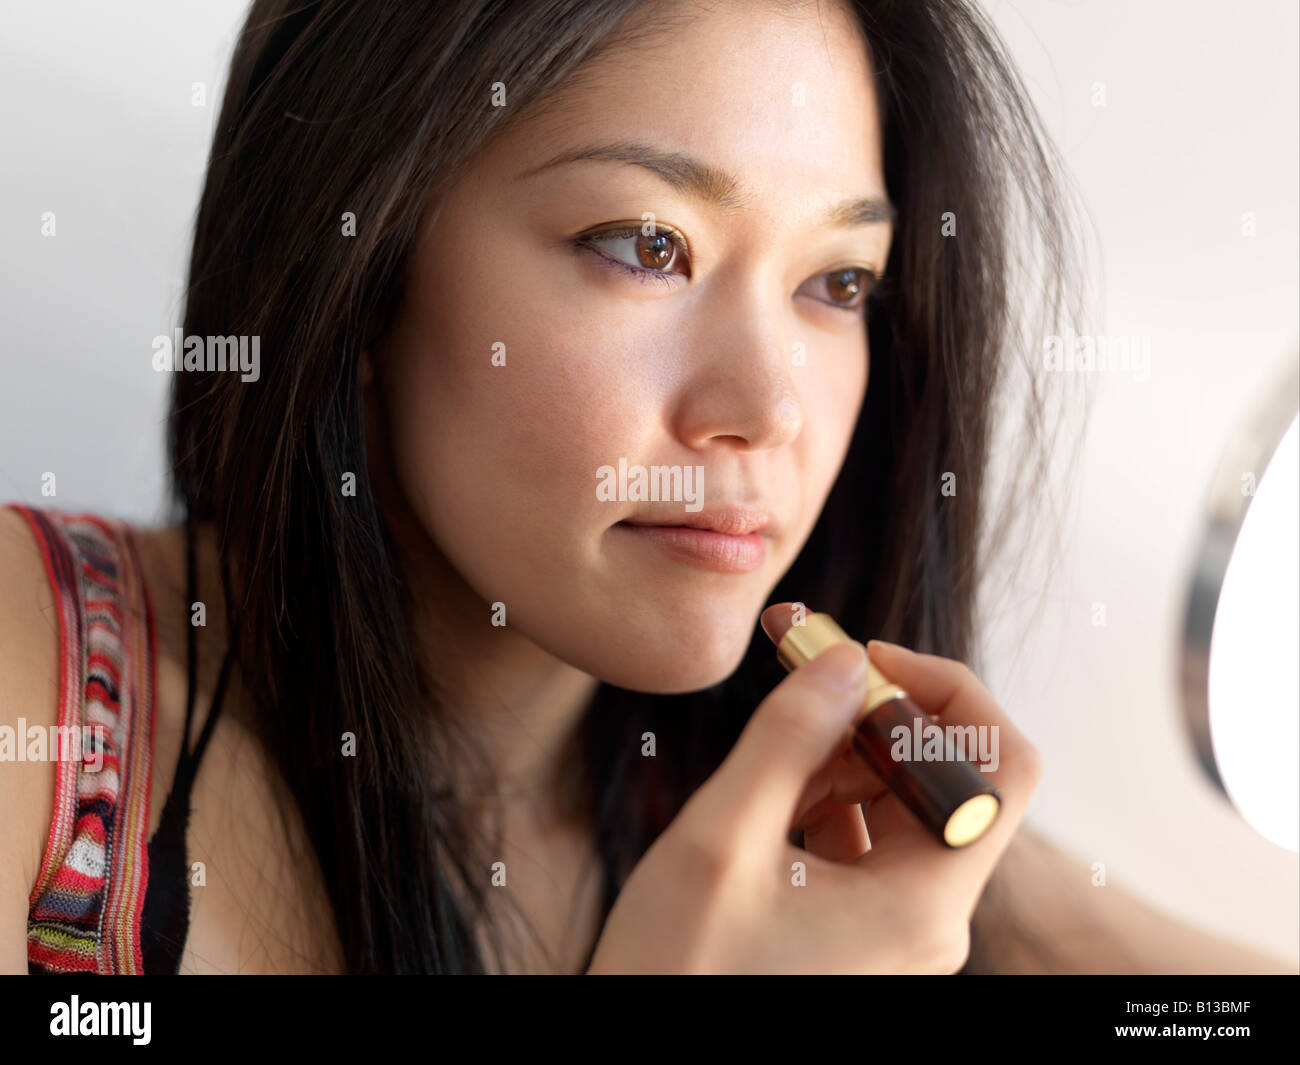 Young Asian women applying lipstick. - Stock Image